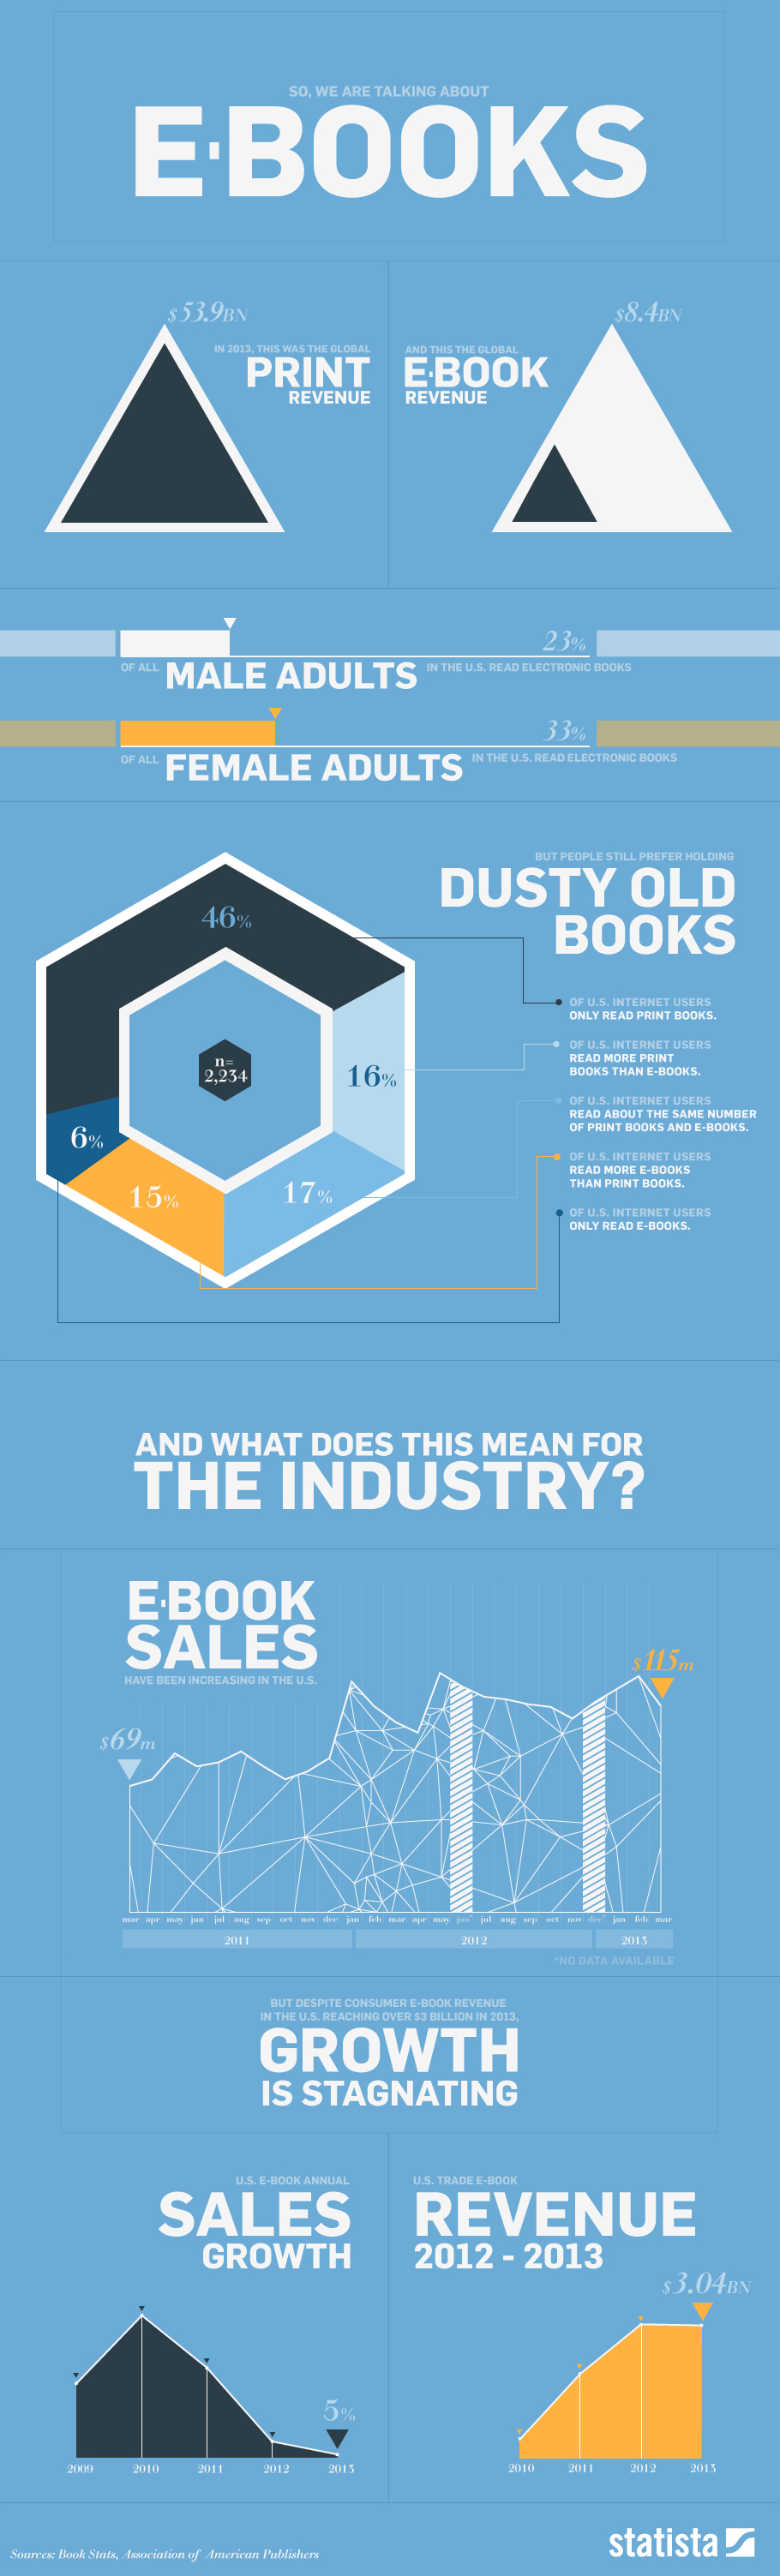 ebooks-infographie